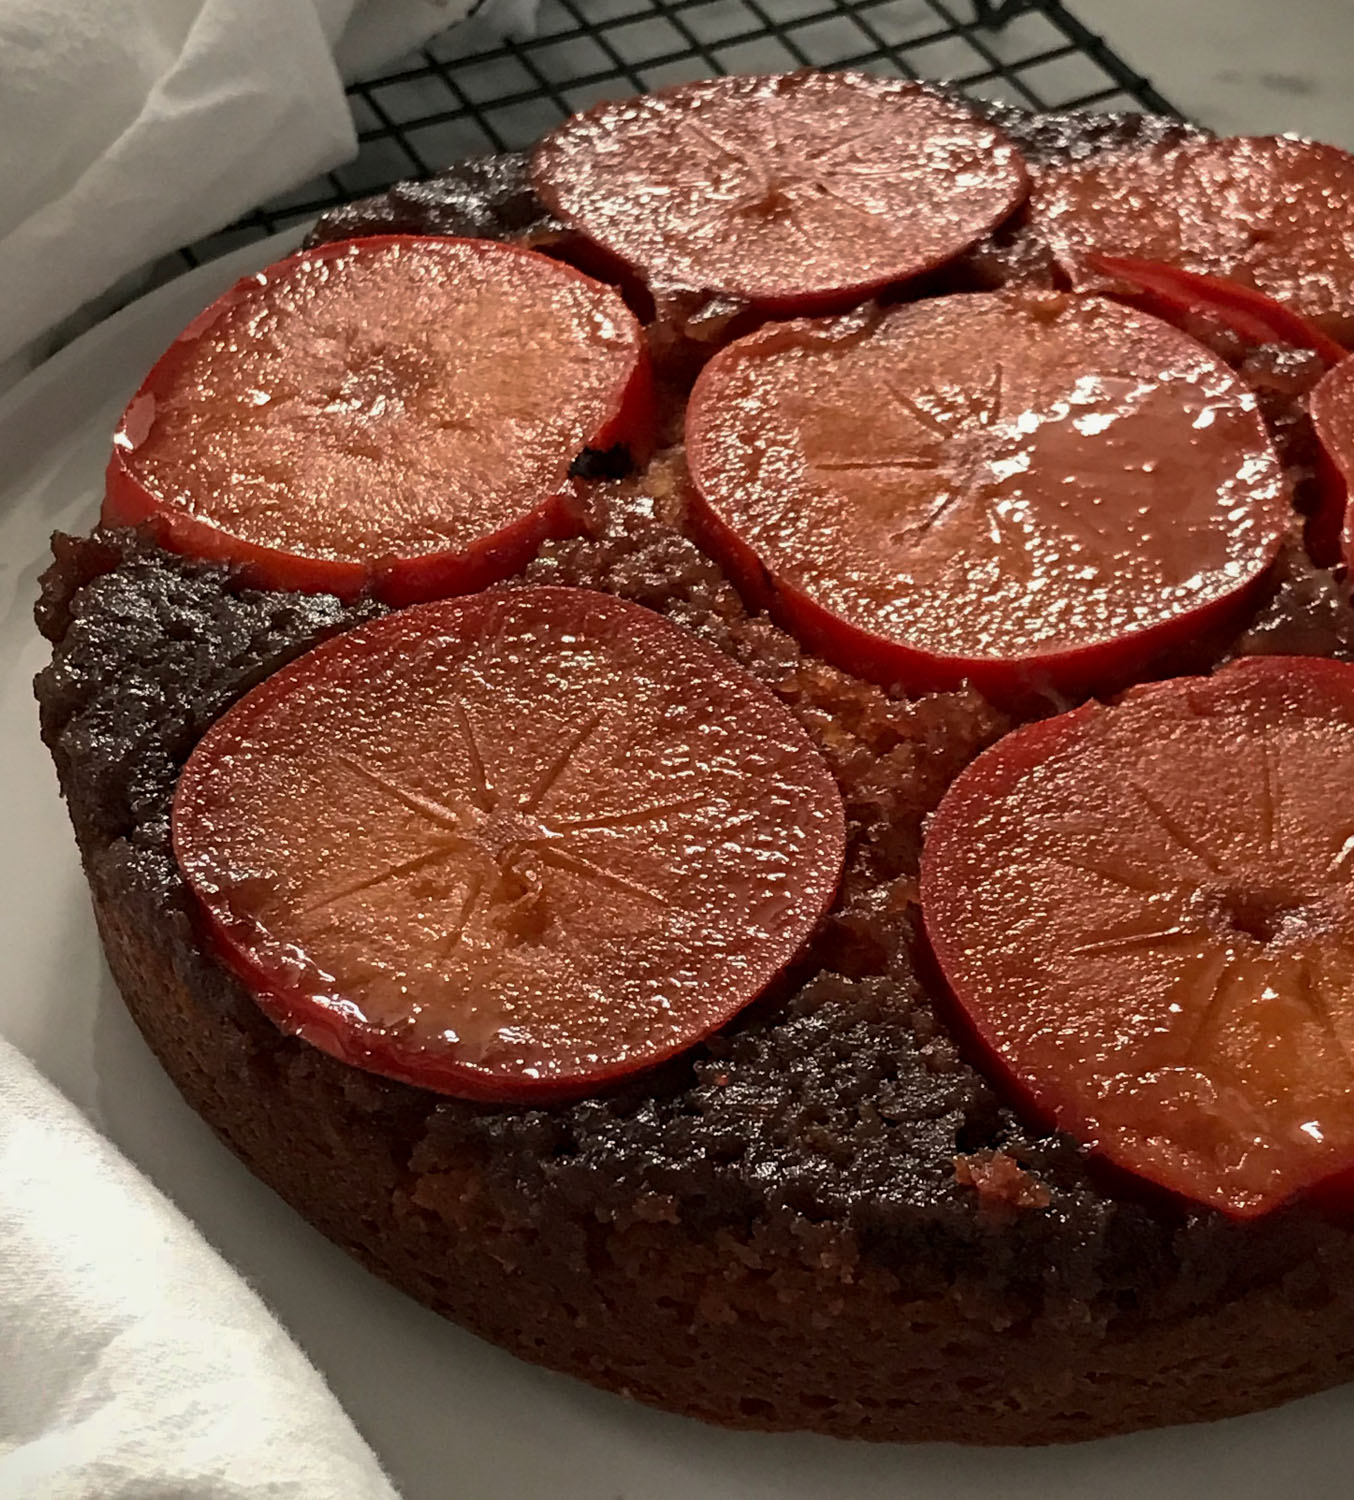 Yummy Close-up of Persimmon Cake Top